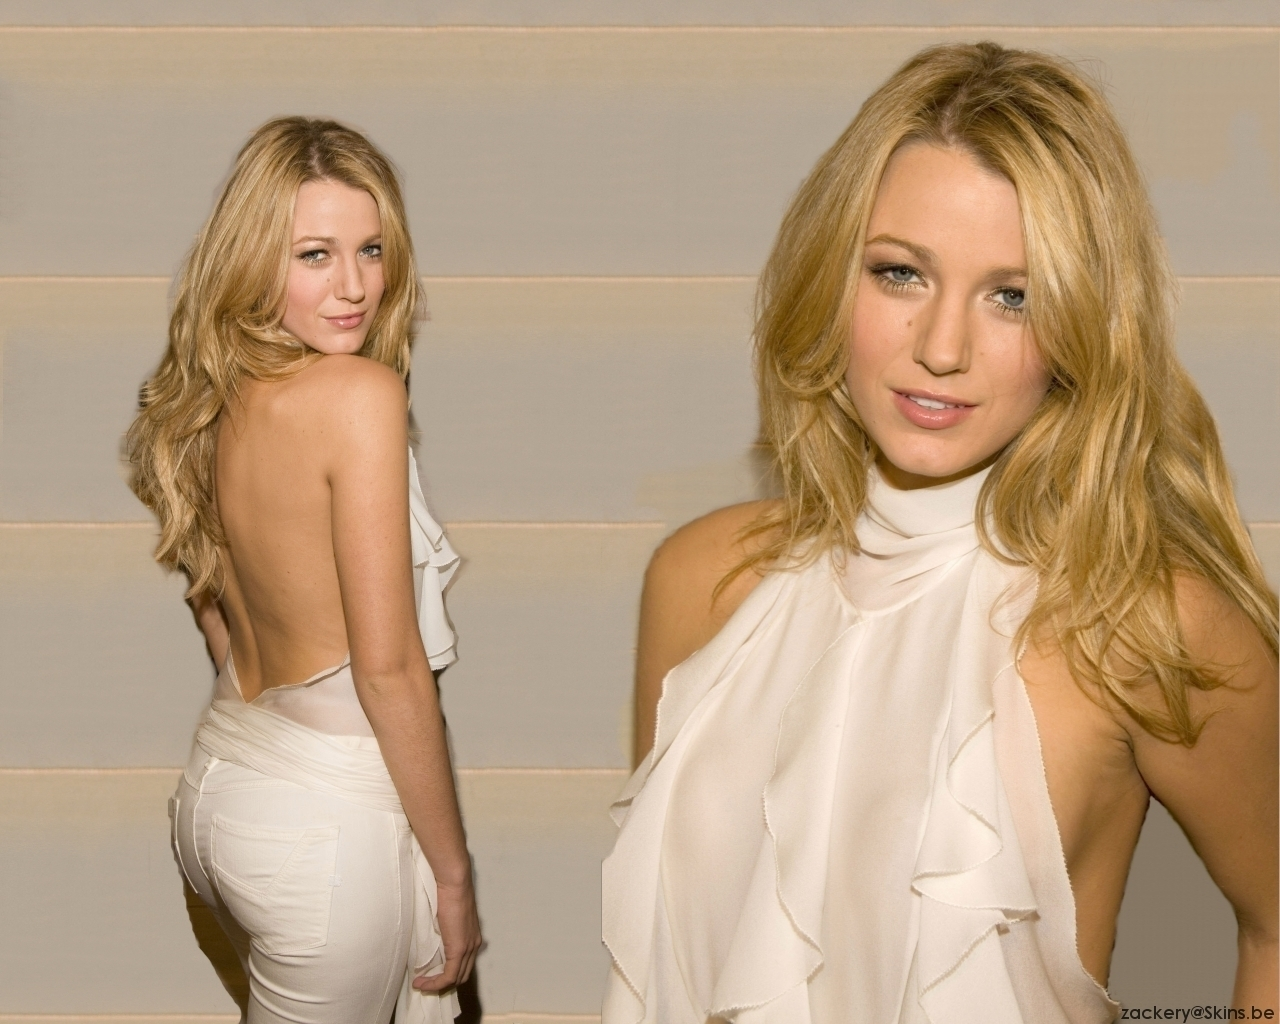 blake - blake lively wallpaper (5040900) - fanpop